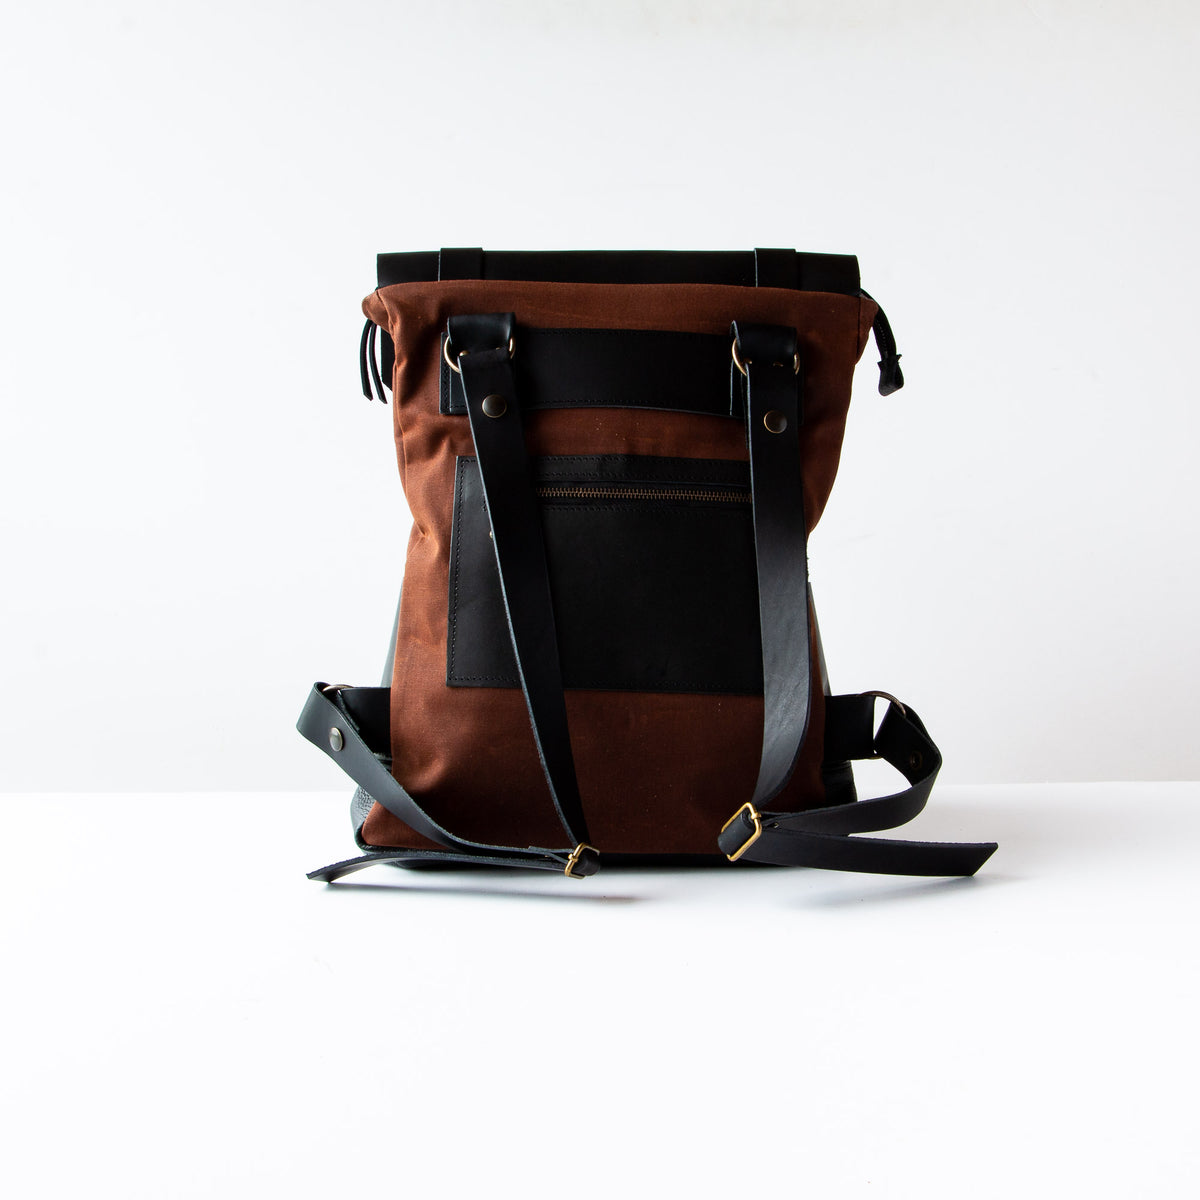 Rear View - Andes - Black Leather Handmade 15 Inch Laptop Backpack - Leather & Waxed Cotton - Sold by Chic & Basta